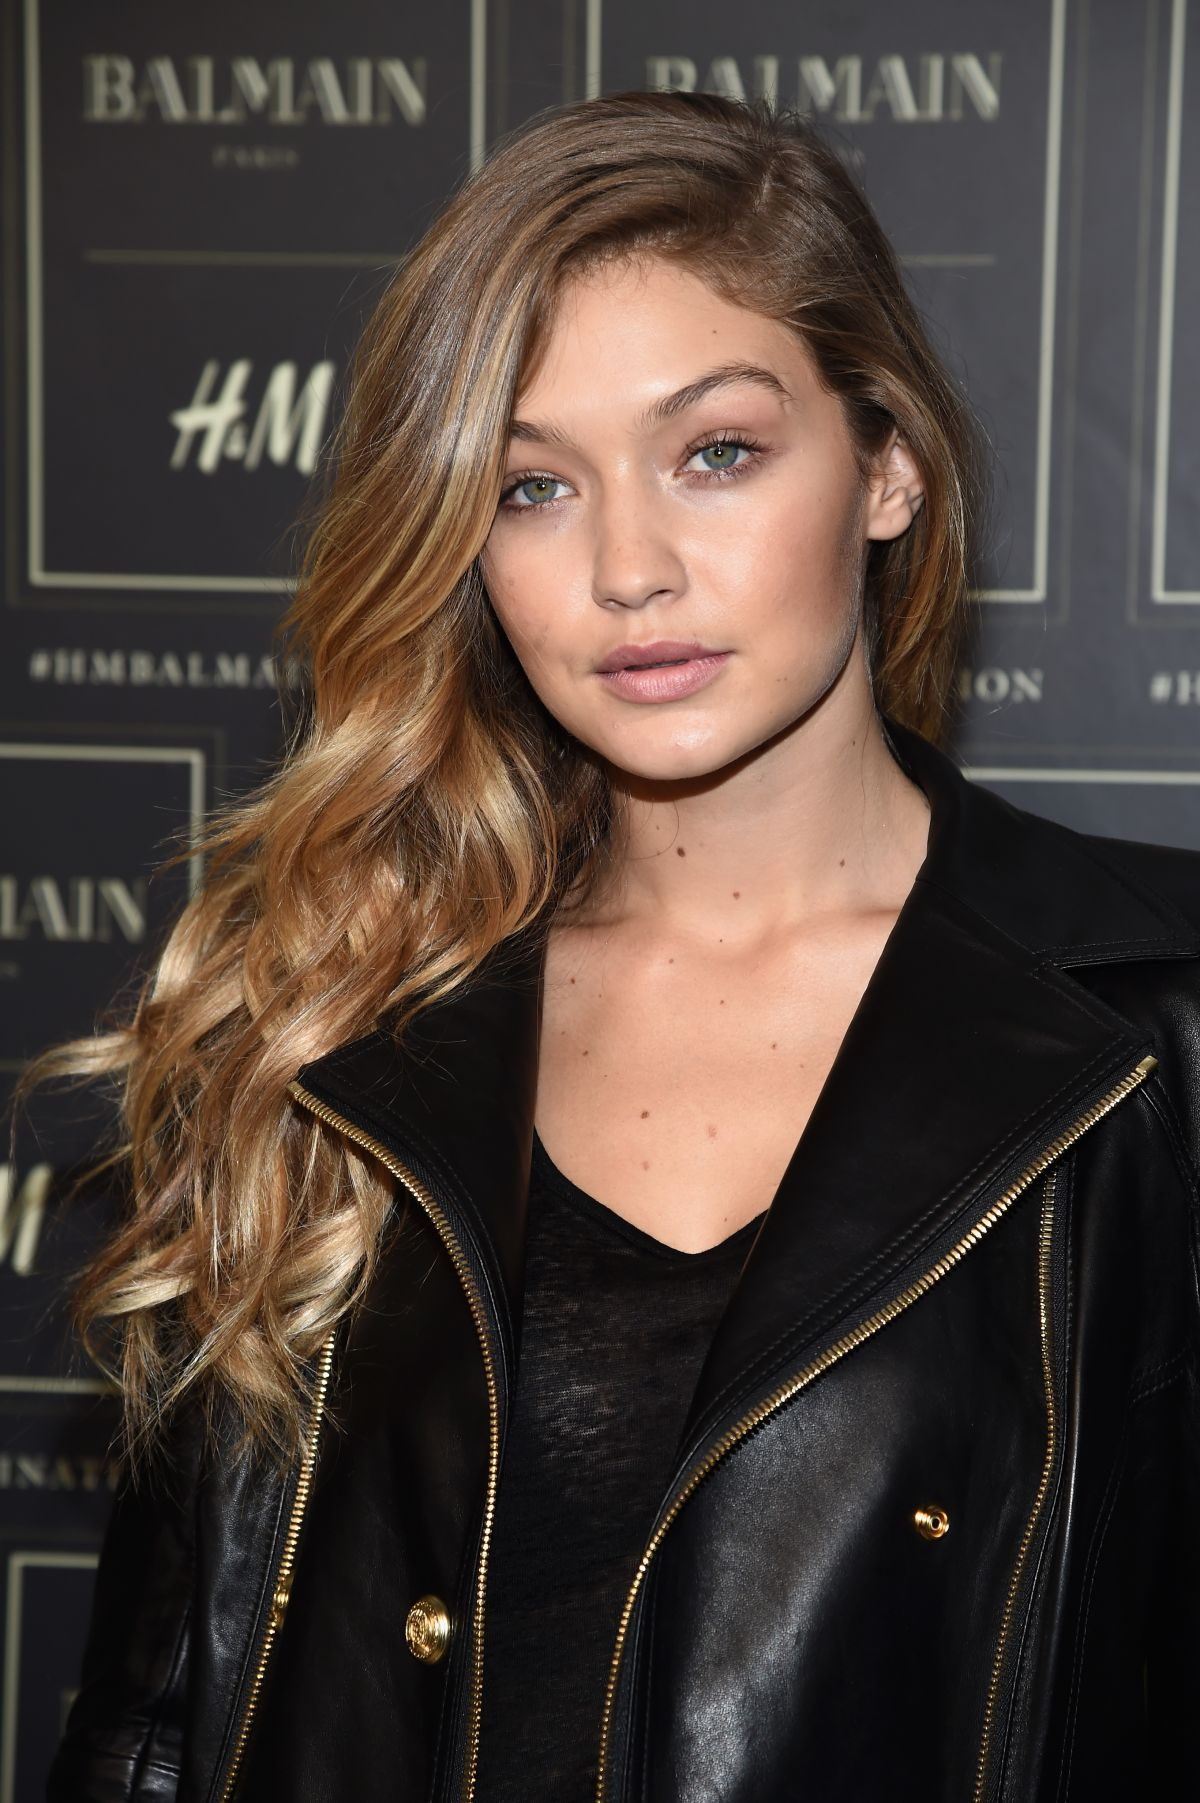 gigi hadid - photo #5